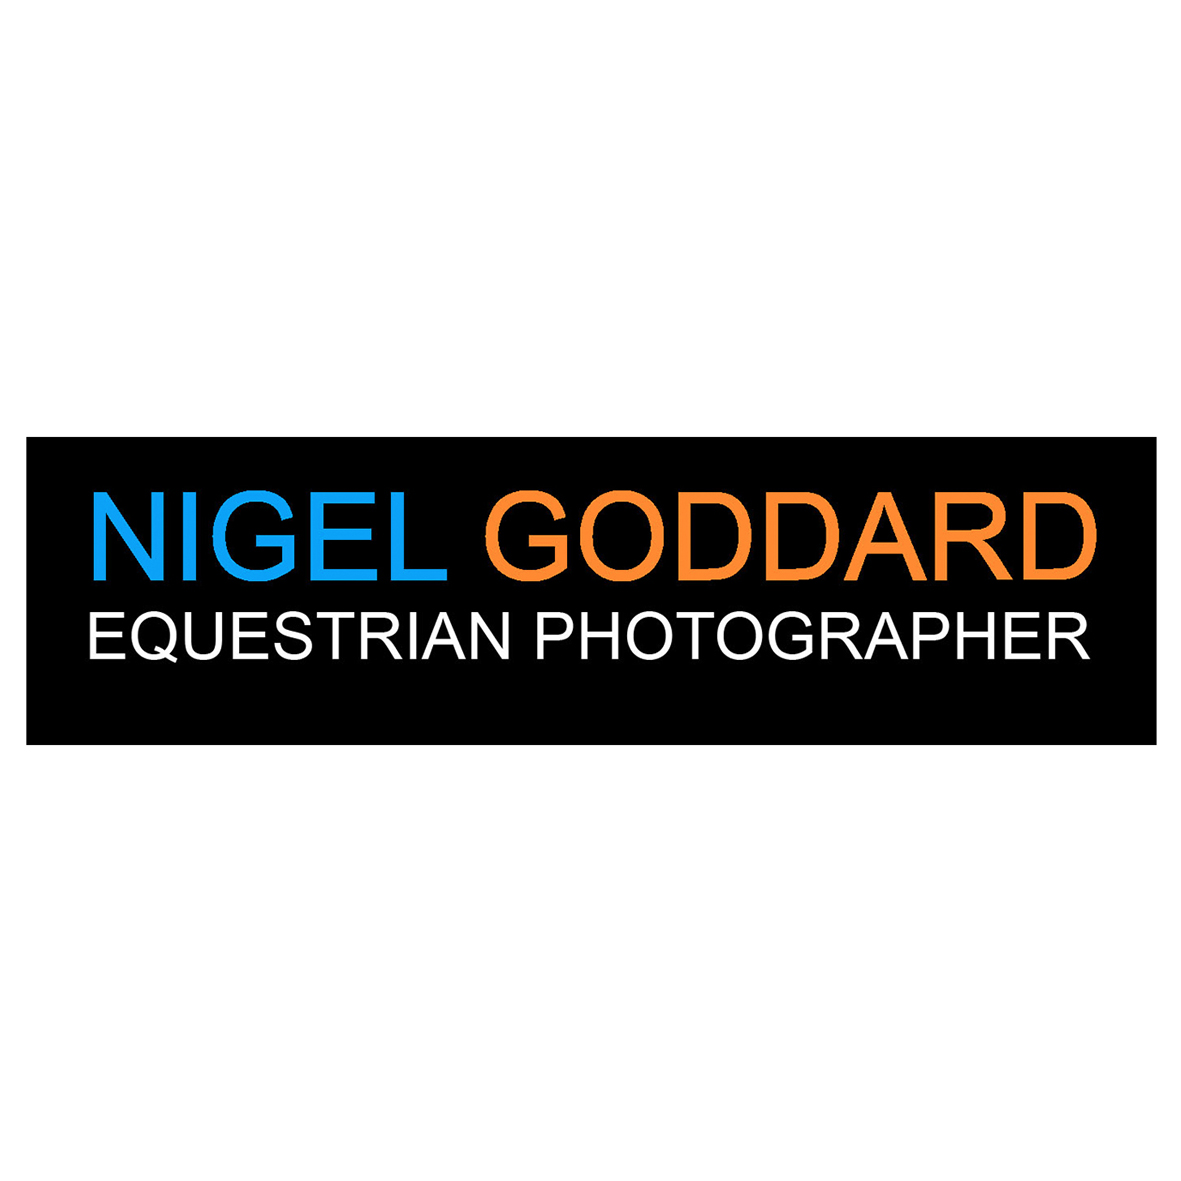 Nigel Goddard - Nigel Goddard is a freelance editorial photographer specialising in providing equine and related pictures to the UK and international media.His pictures have appeared in Horse & Hound, Eventing, The Irish Field and many other specialist publications in the UK and worldwide.www.nigelgoddard.co.uk